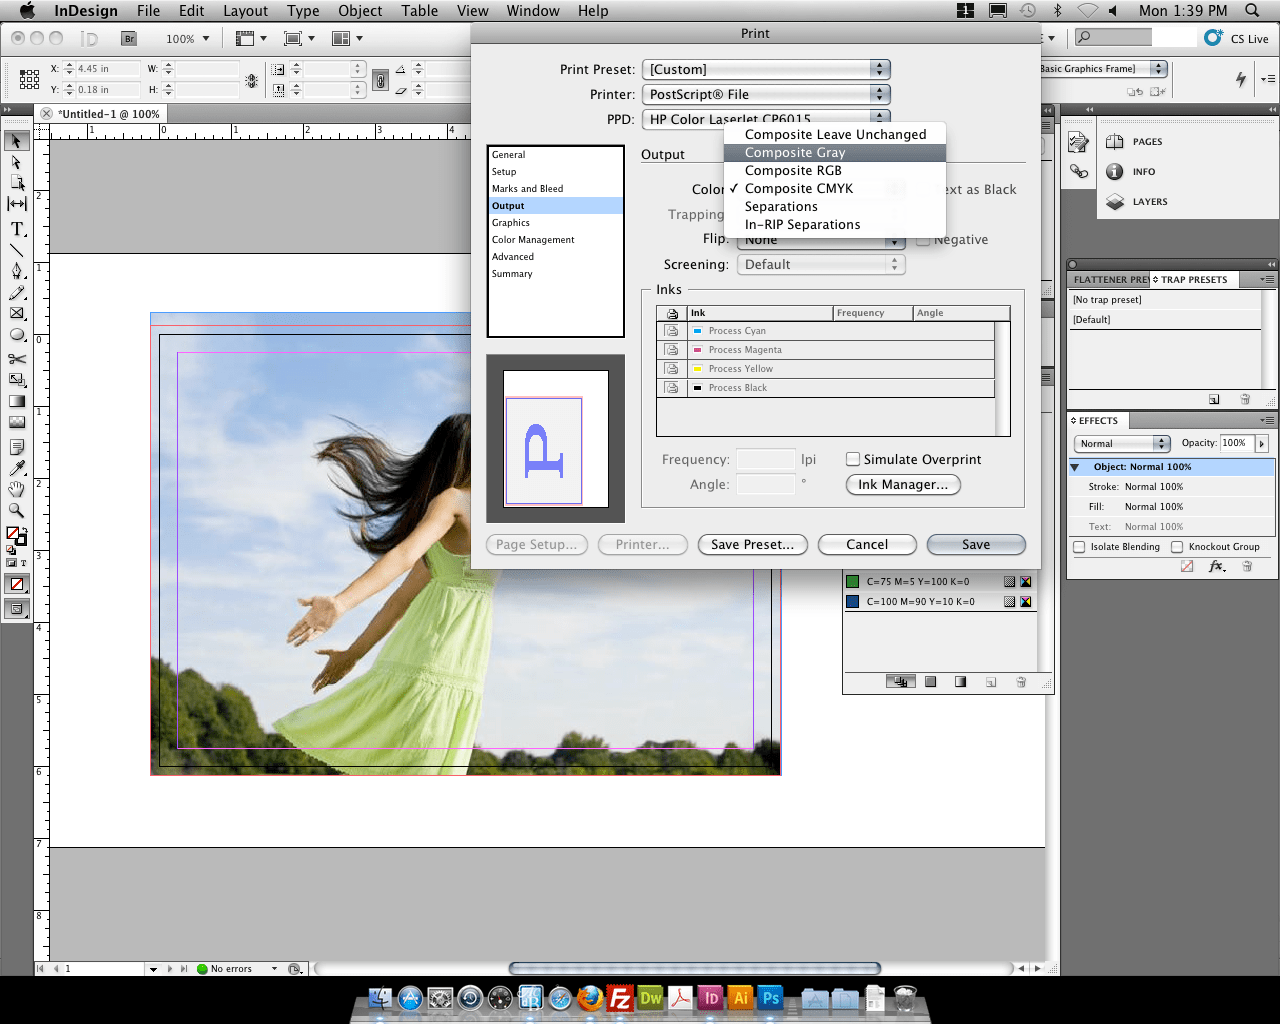 how to open a pdf document in indesign